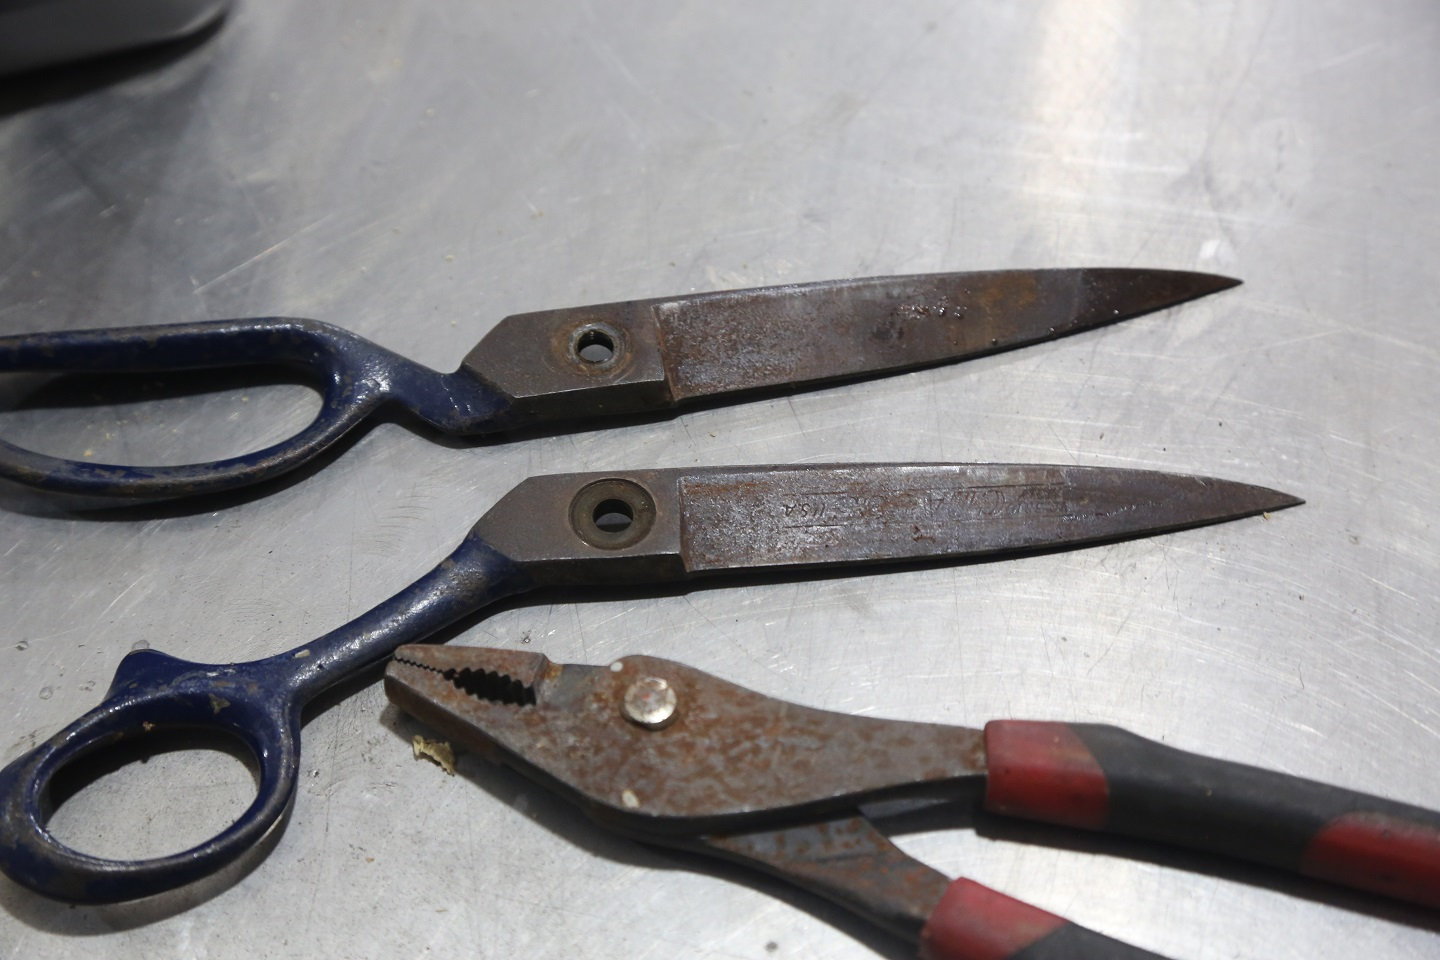 We prepped the tools by taking them apart. The scissors simply unbolted, but the pliers cannot be separated, we just removed the rubber handles.